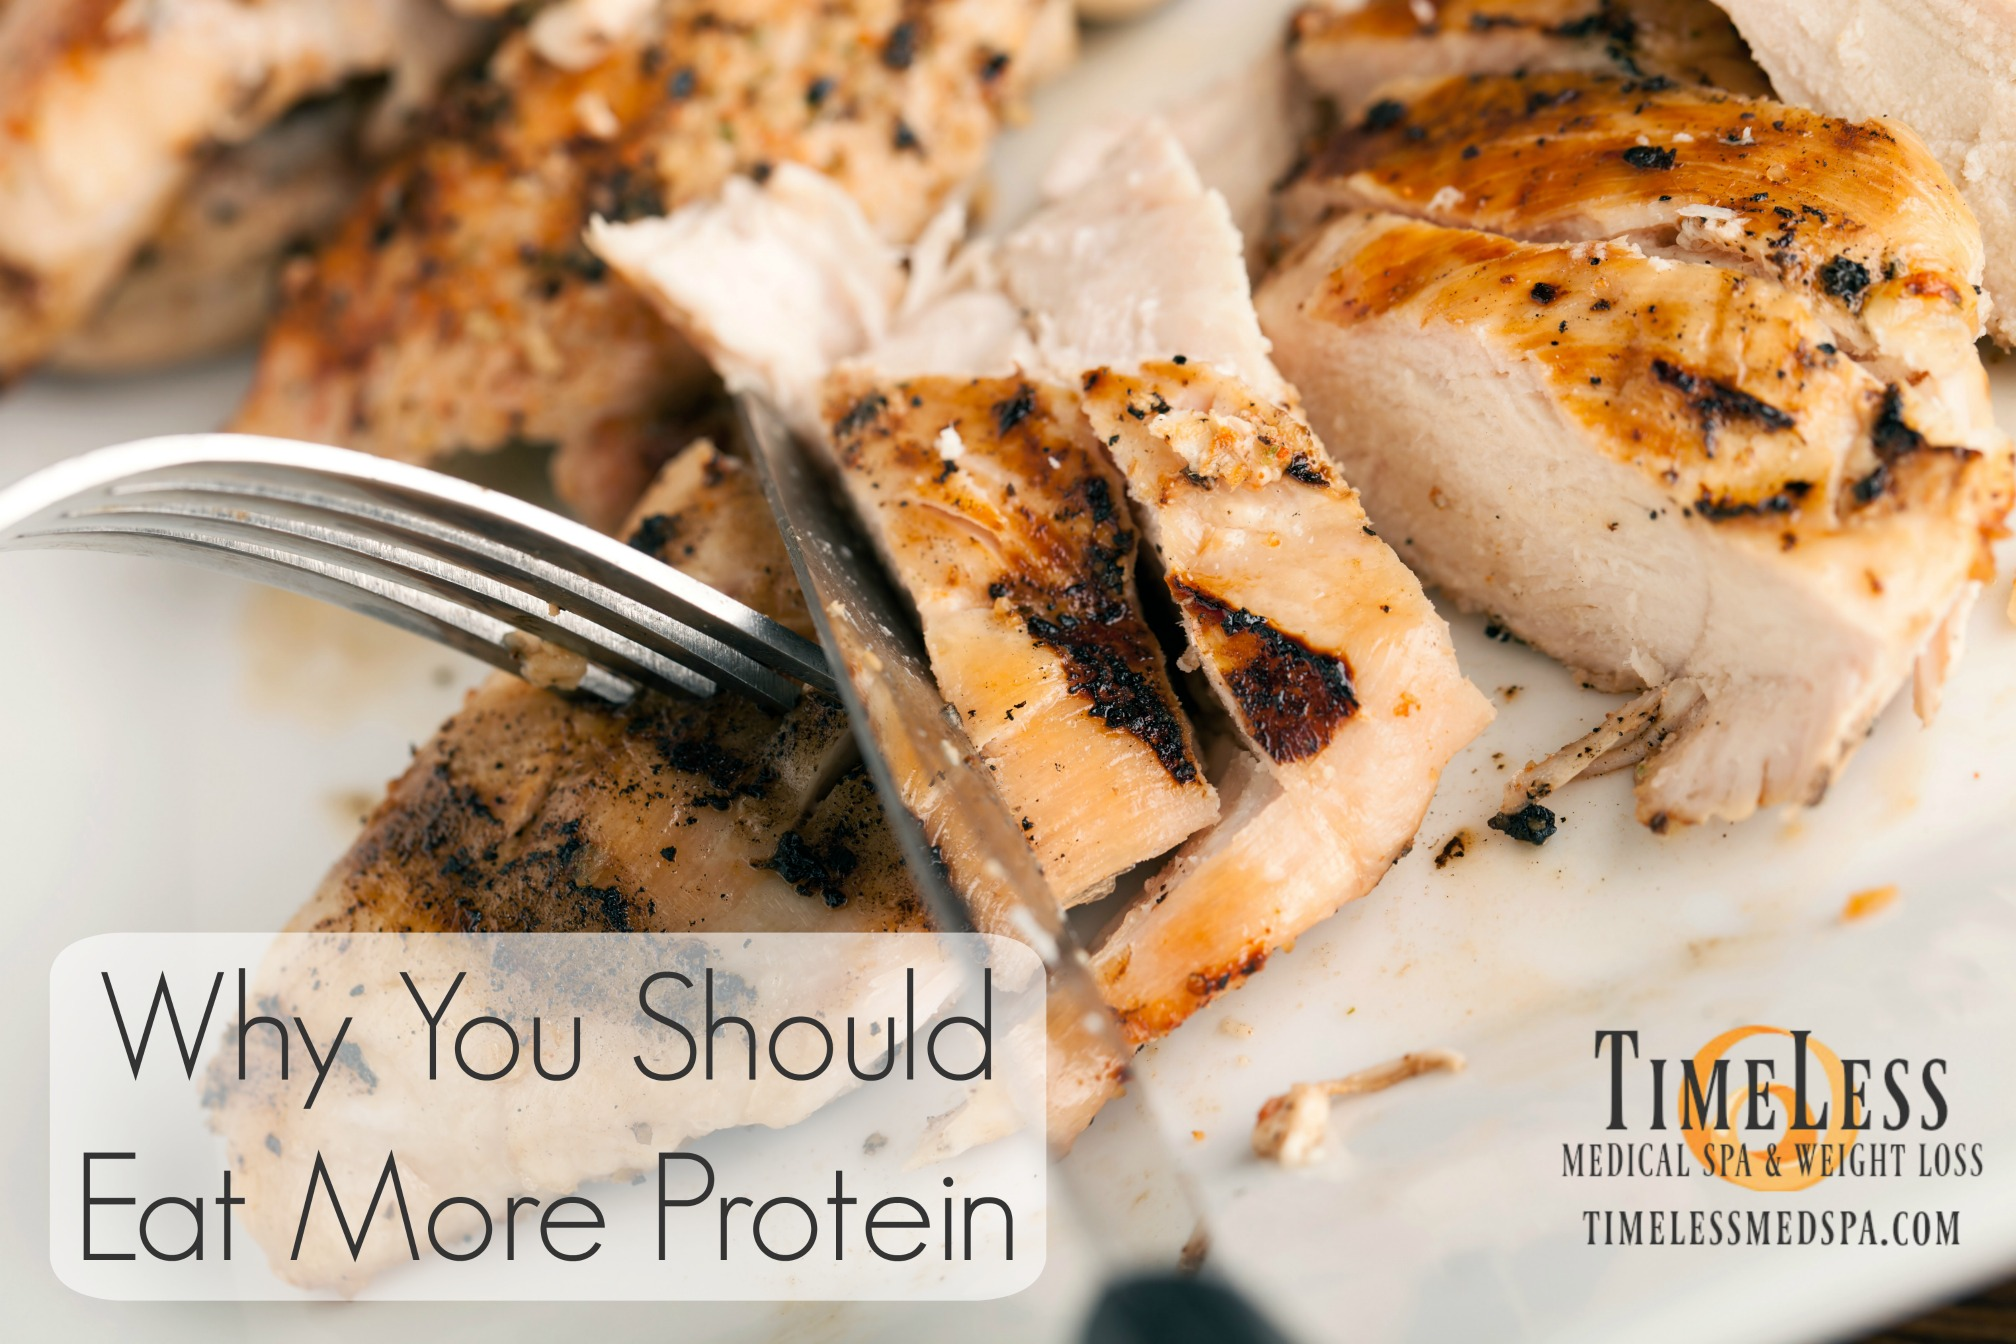 Why You Should Eat More Protein // Healthy diet tips for weight loss. How protein supports the body and helps weight loss. || TimeLess Medical Weight Loss Blog